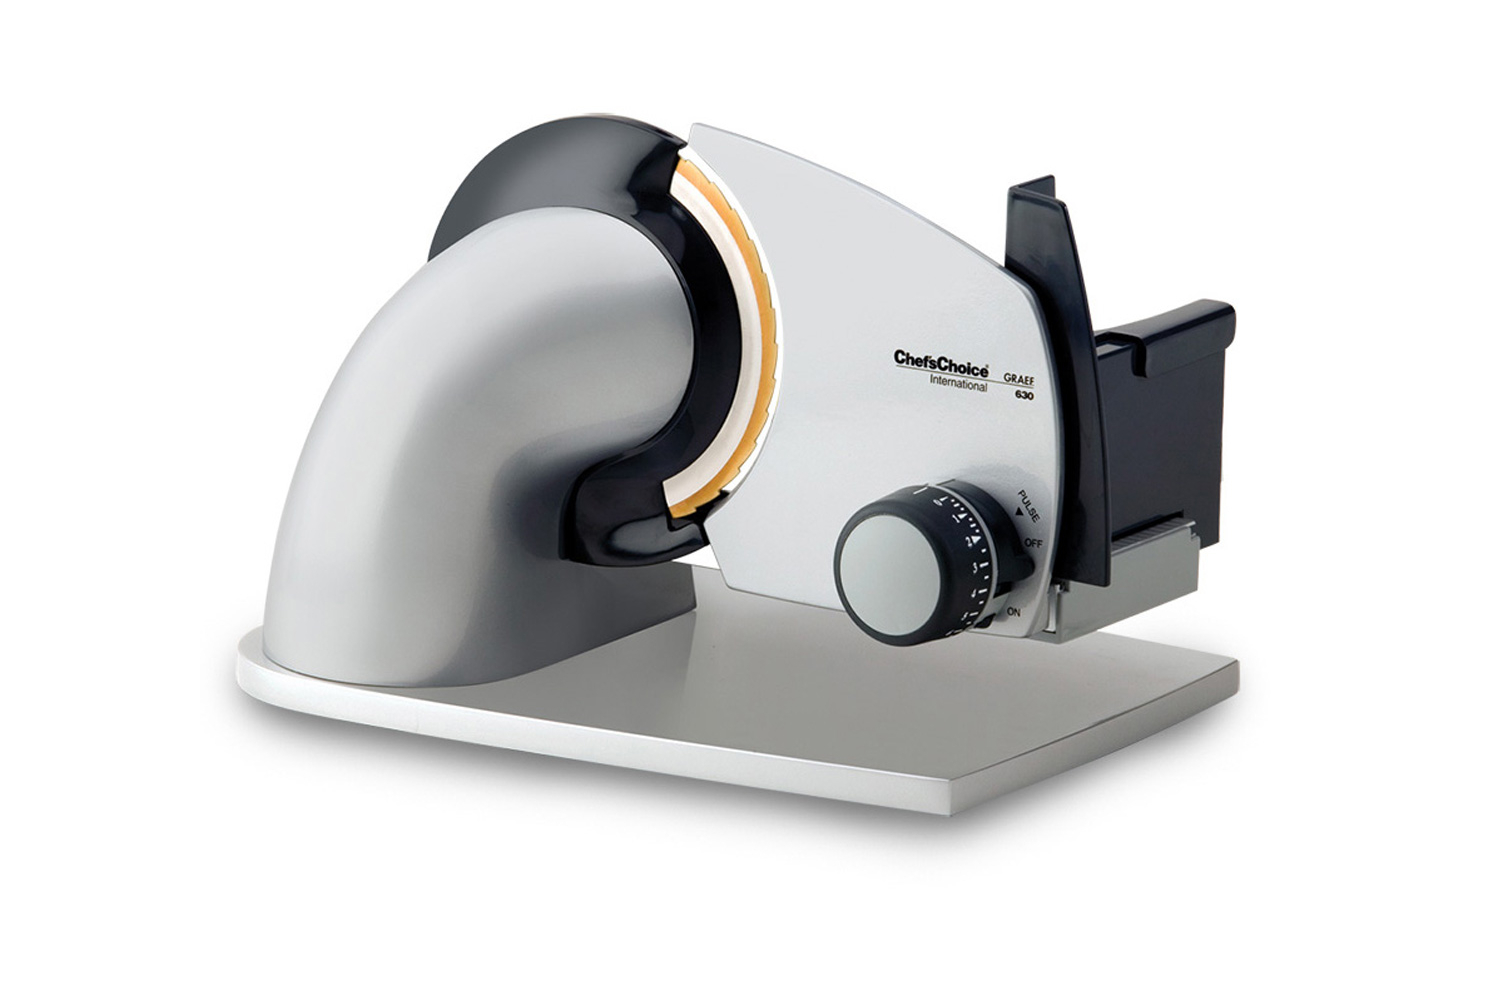 Chef'sChoice 630 Gourmet Electric Food Slicer